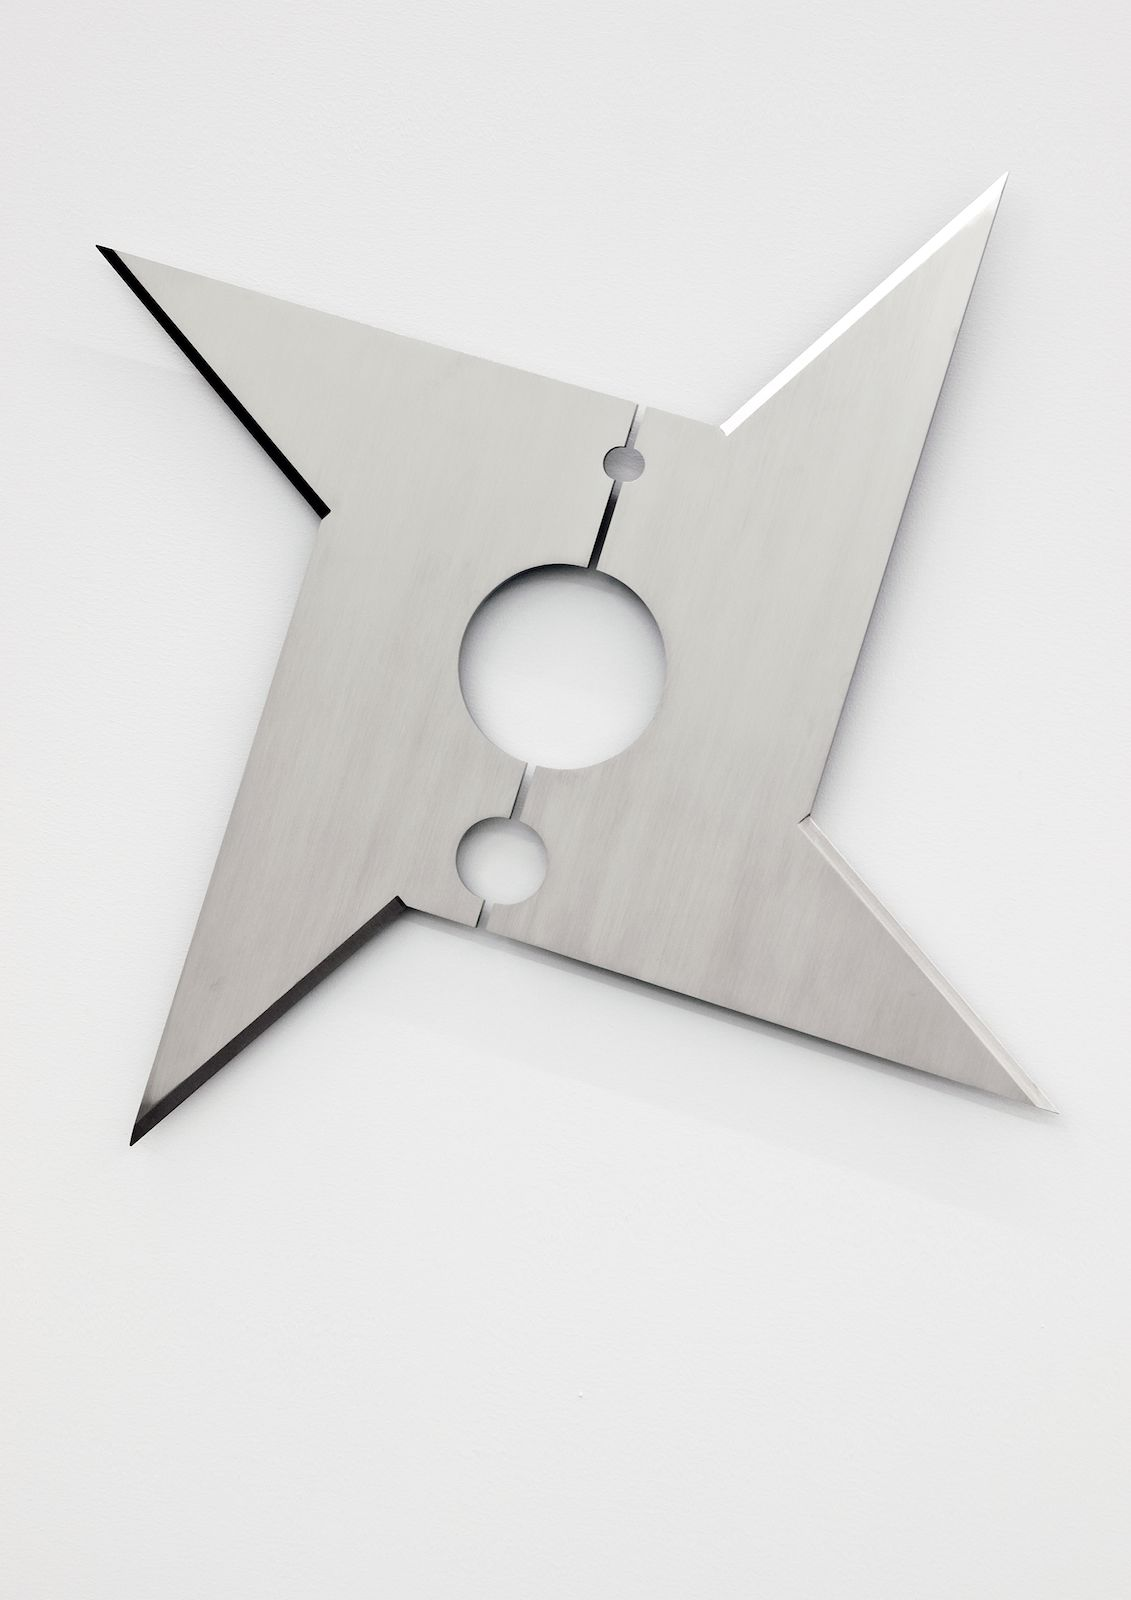 Kristina Matousch, Cutting Cunt, 2010, laser cut stainless steel, 75 x 52 x 2 cm